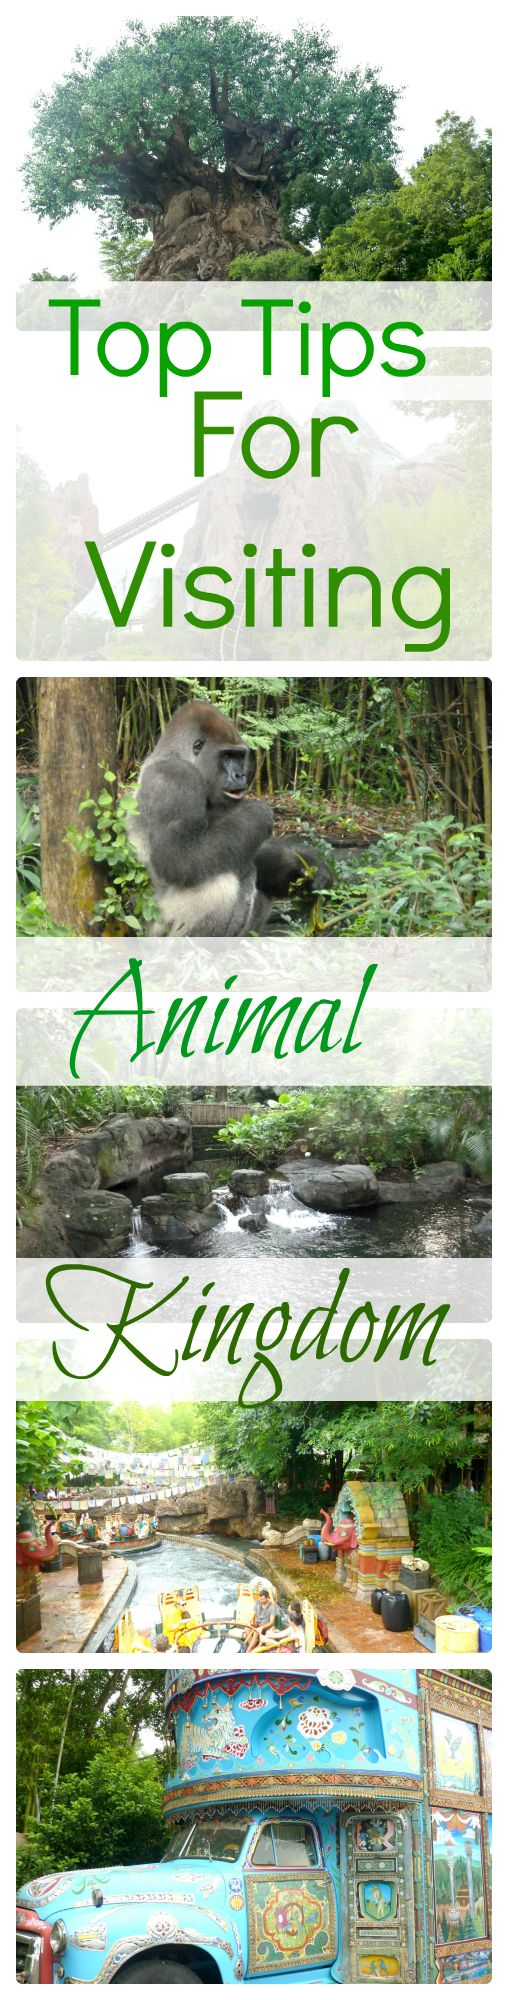 Top Tips for visiting Animal kingdom Walt Disney World With Teens and Tweens and How To Get The Best Out A Day Visiting During A Disney Trip